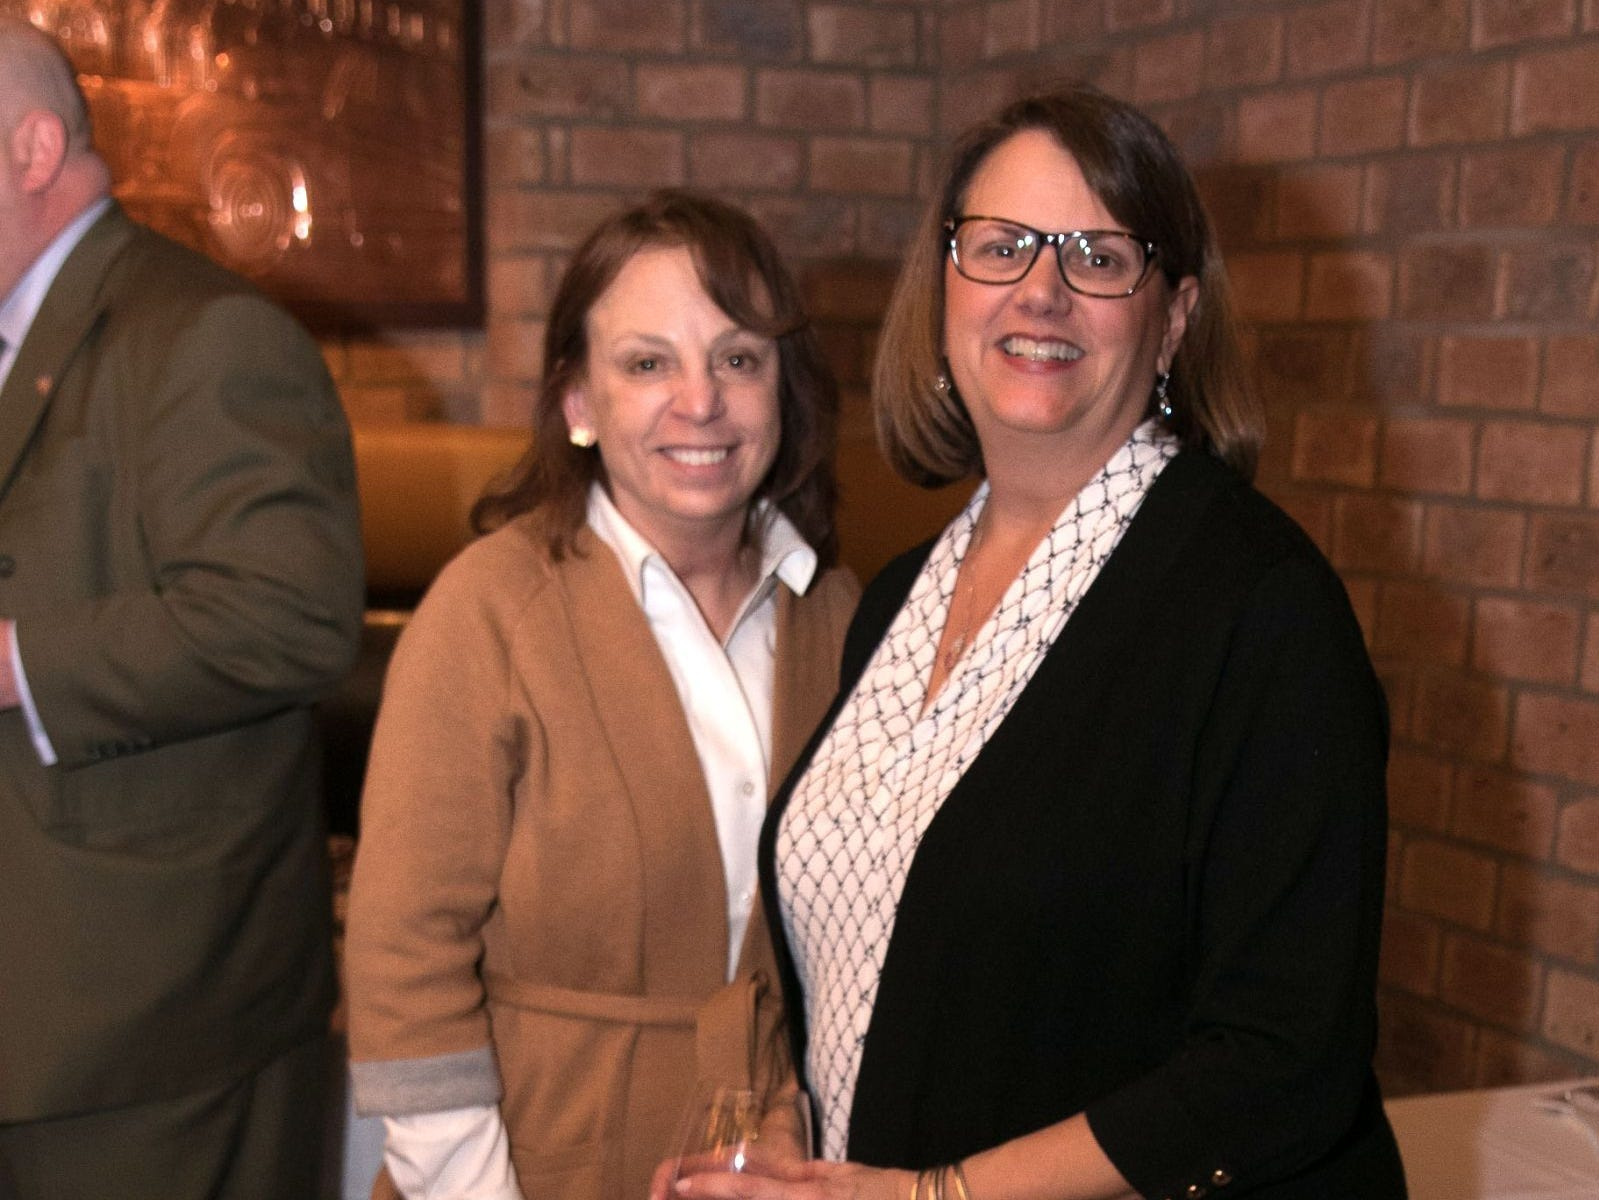 Laura Grabe, Donna Pierce. Christina Gibbons of Special Properties held a cocktail reception to acknowledge her clients at Roots Steakhouse in Ridgewood. 02/07/2019